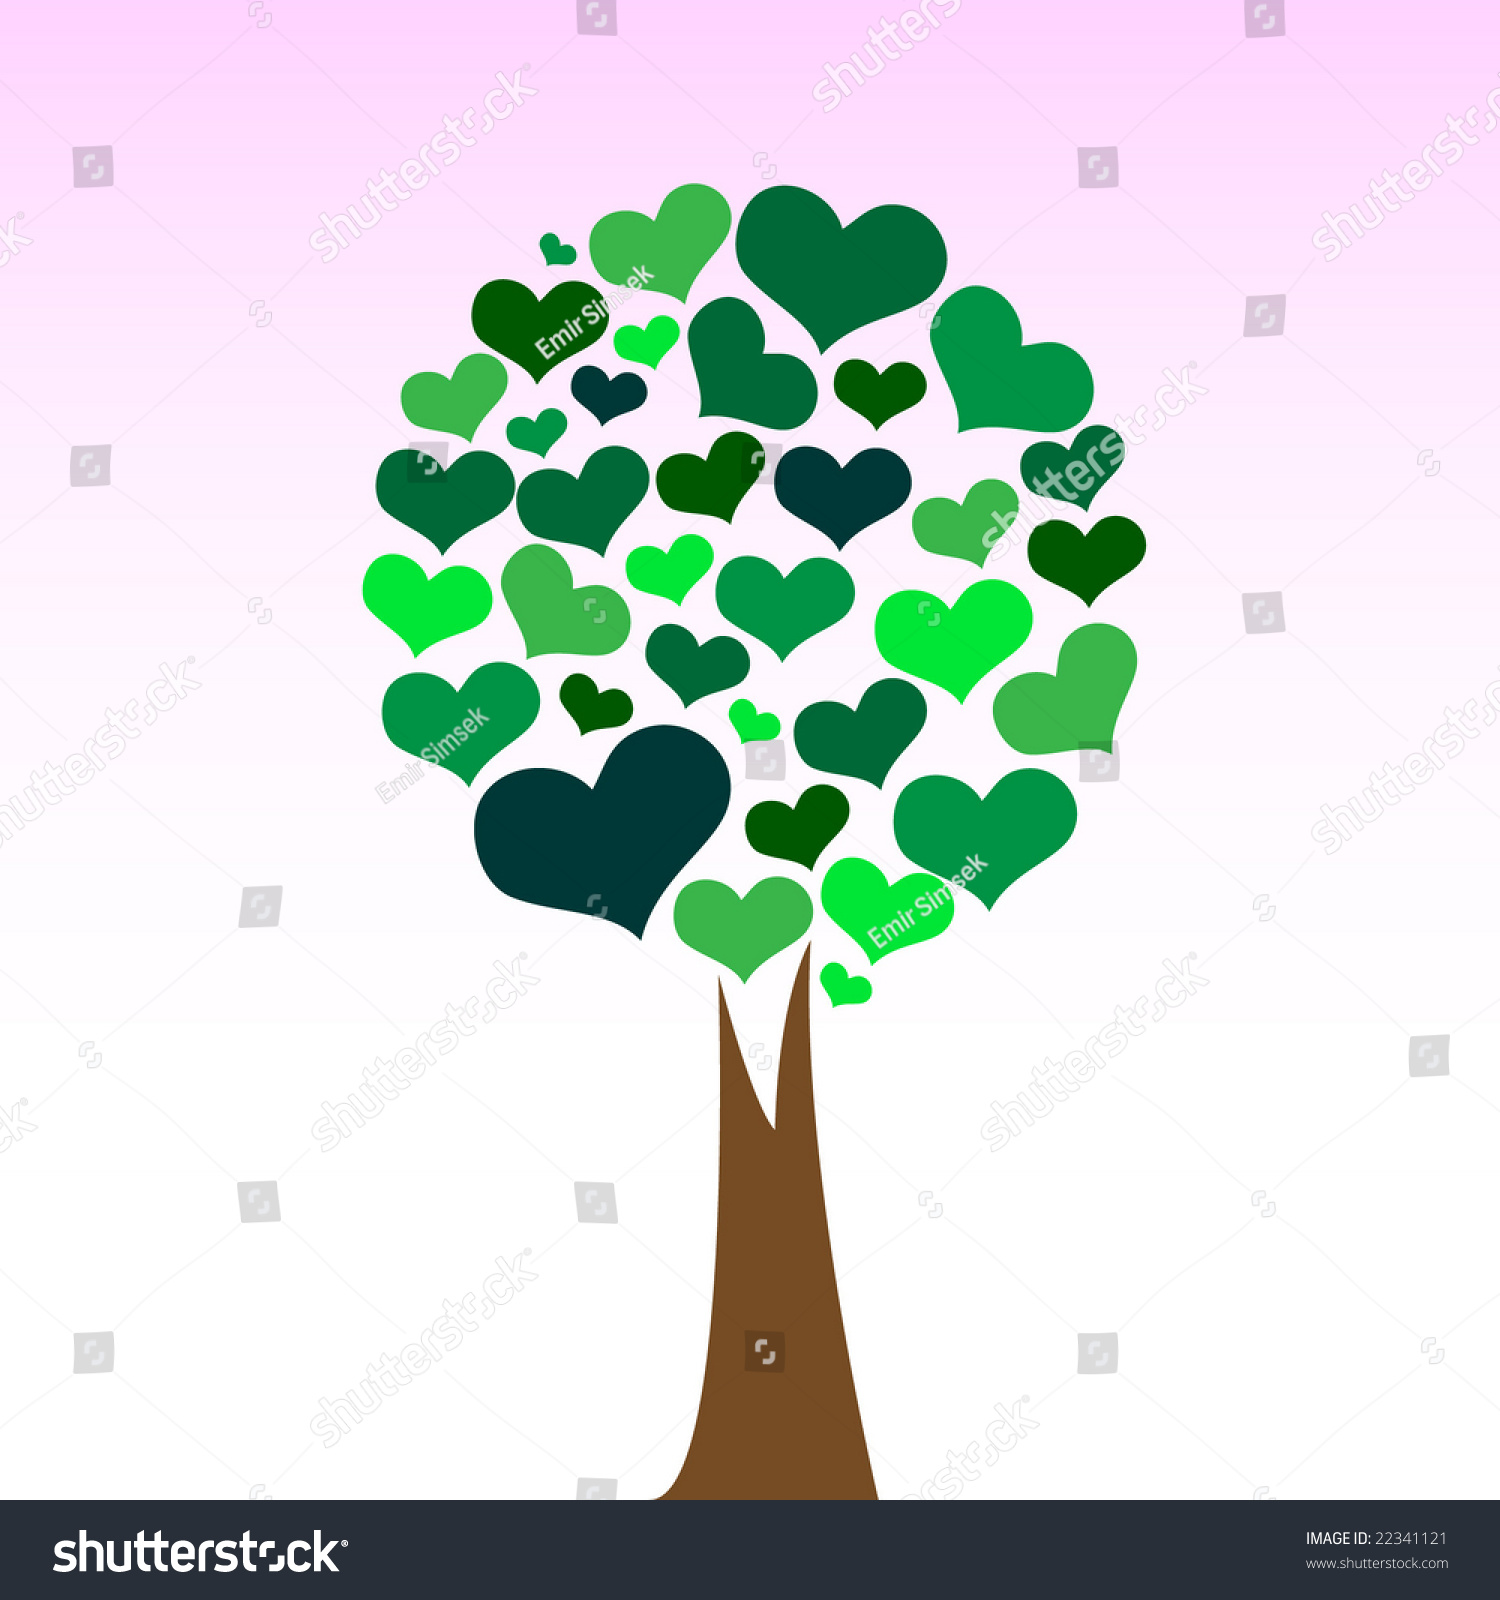 Love Tree Stock Vector Illustration 22341121 : Shutterstock